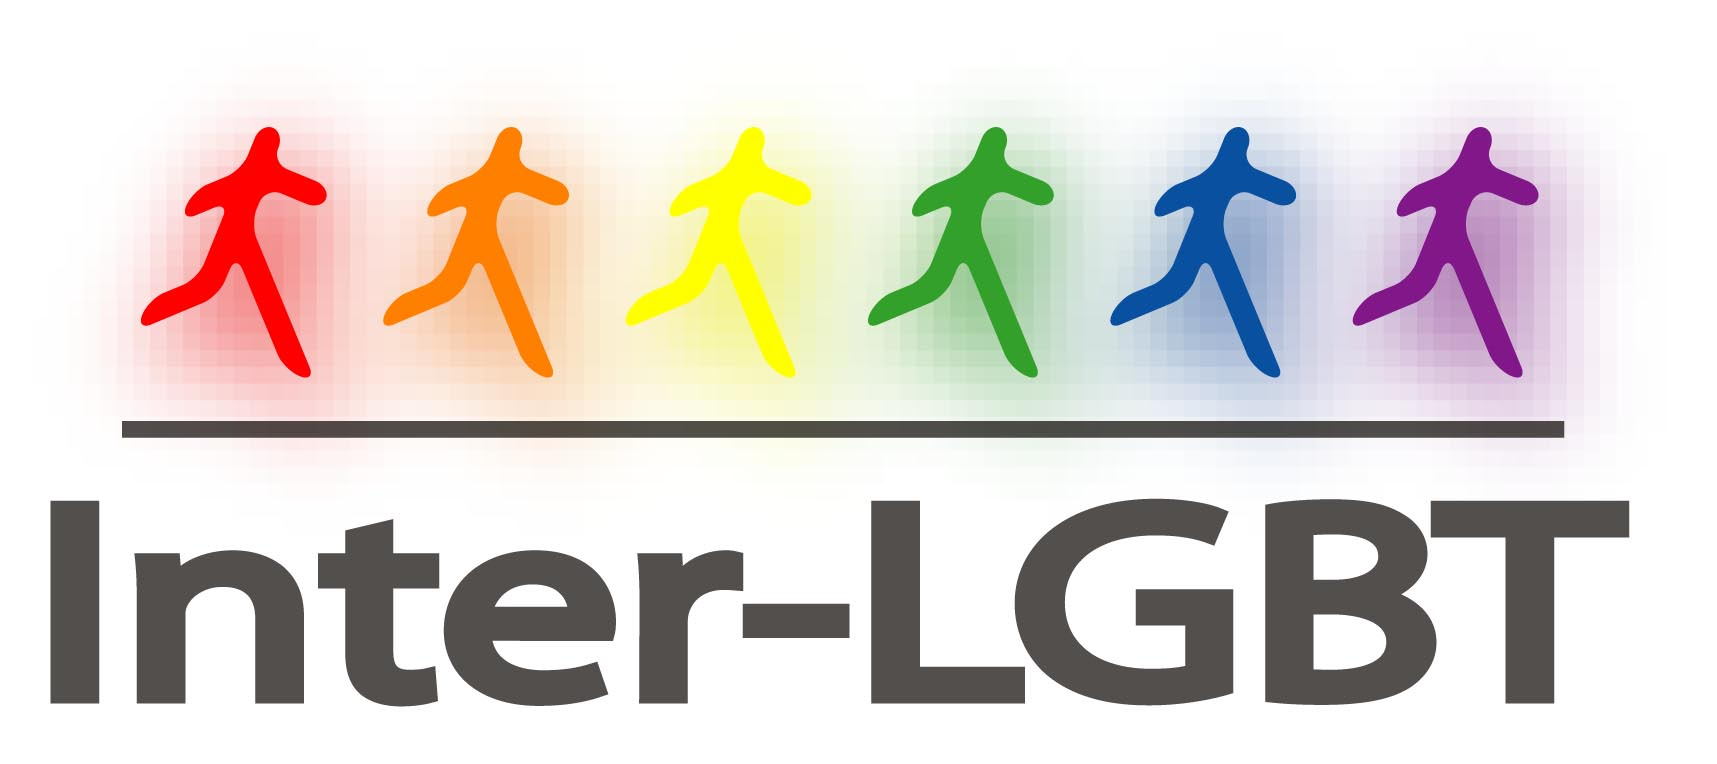 http://droitsegalite.files.wordpress.com/2010/05/logo-interlgbt-1717x764.jpg